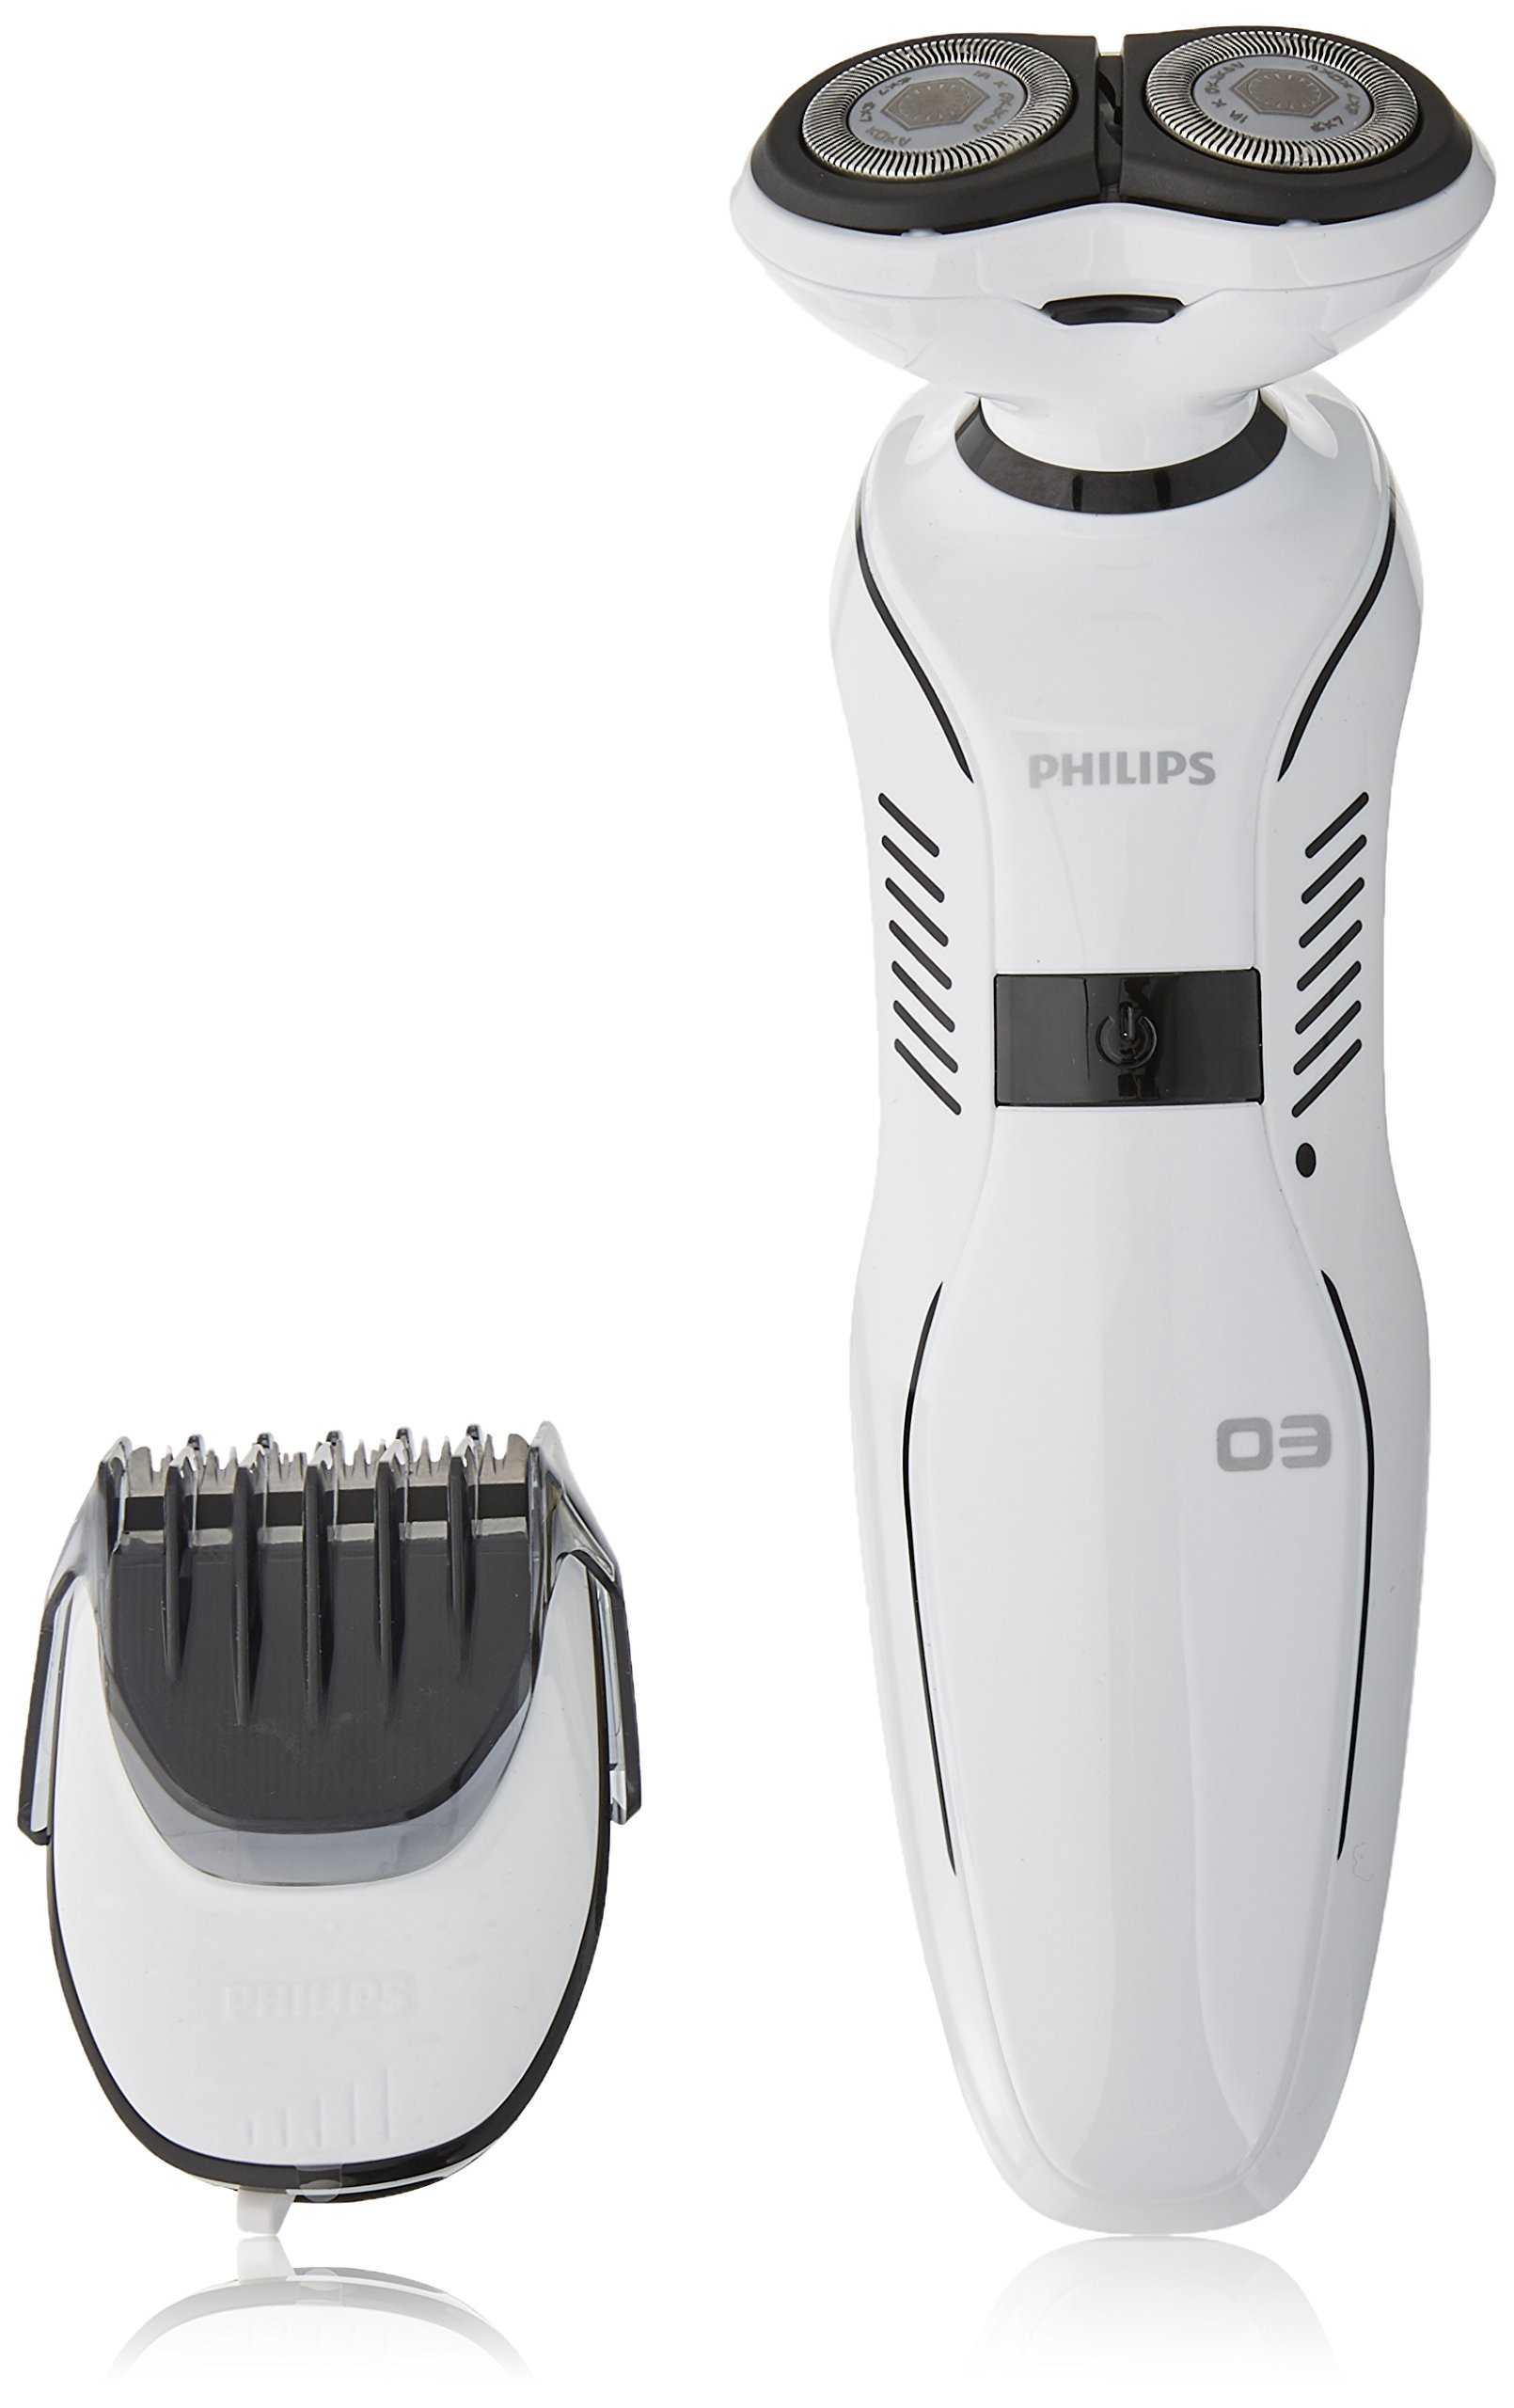 Philips Norelco Special Edition Star Wars Poe Wet Dry Electrical Wall Outlet Wiring Newhairstylesformen2014com Storm Trooper Electric Shaver Styler